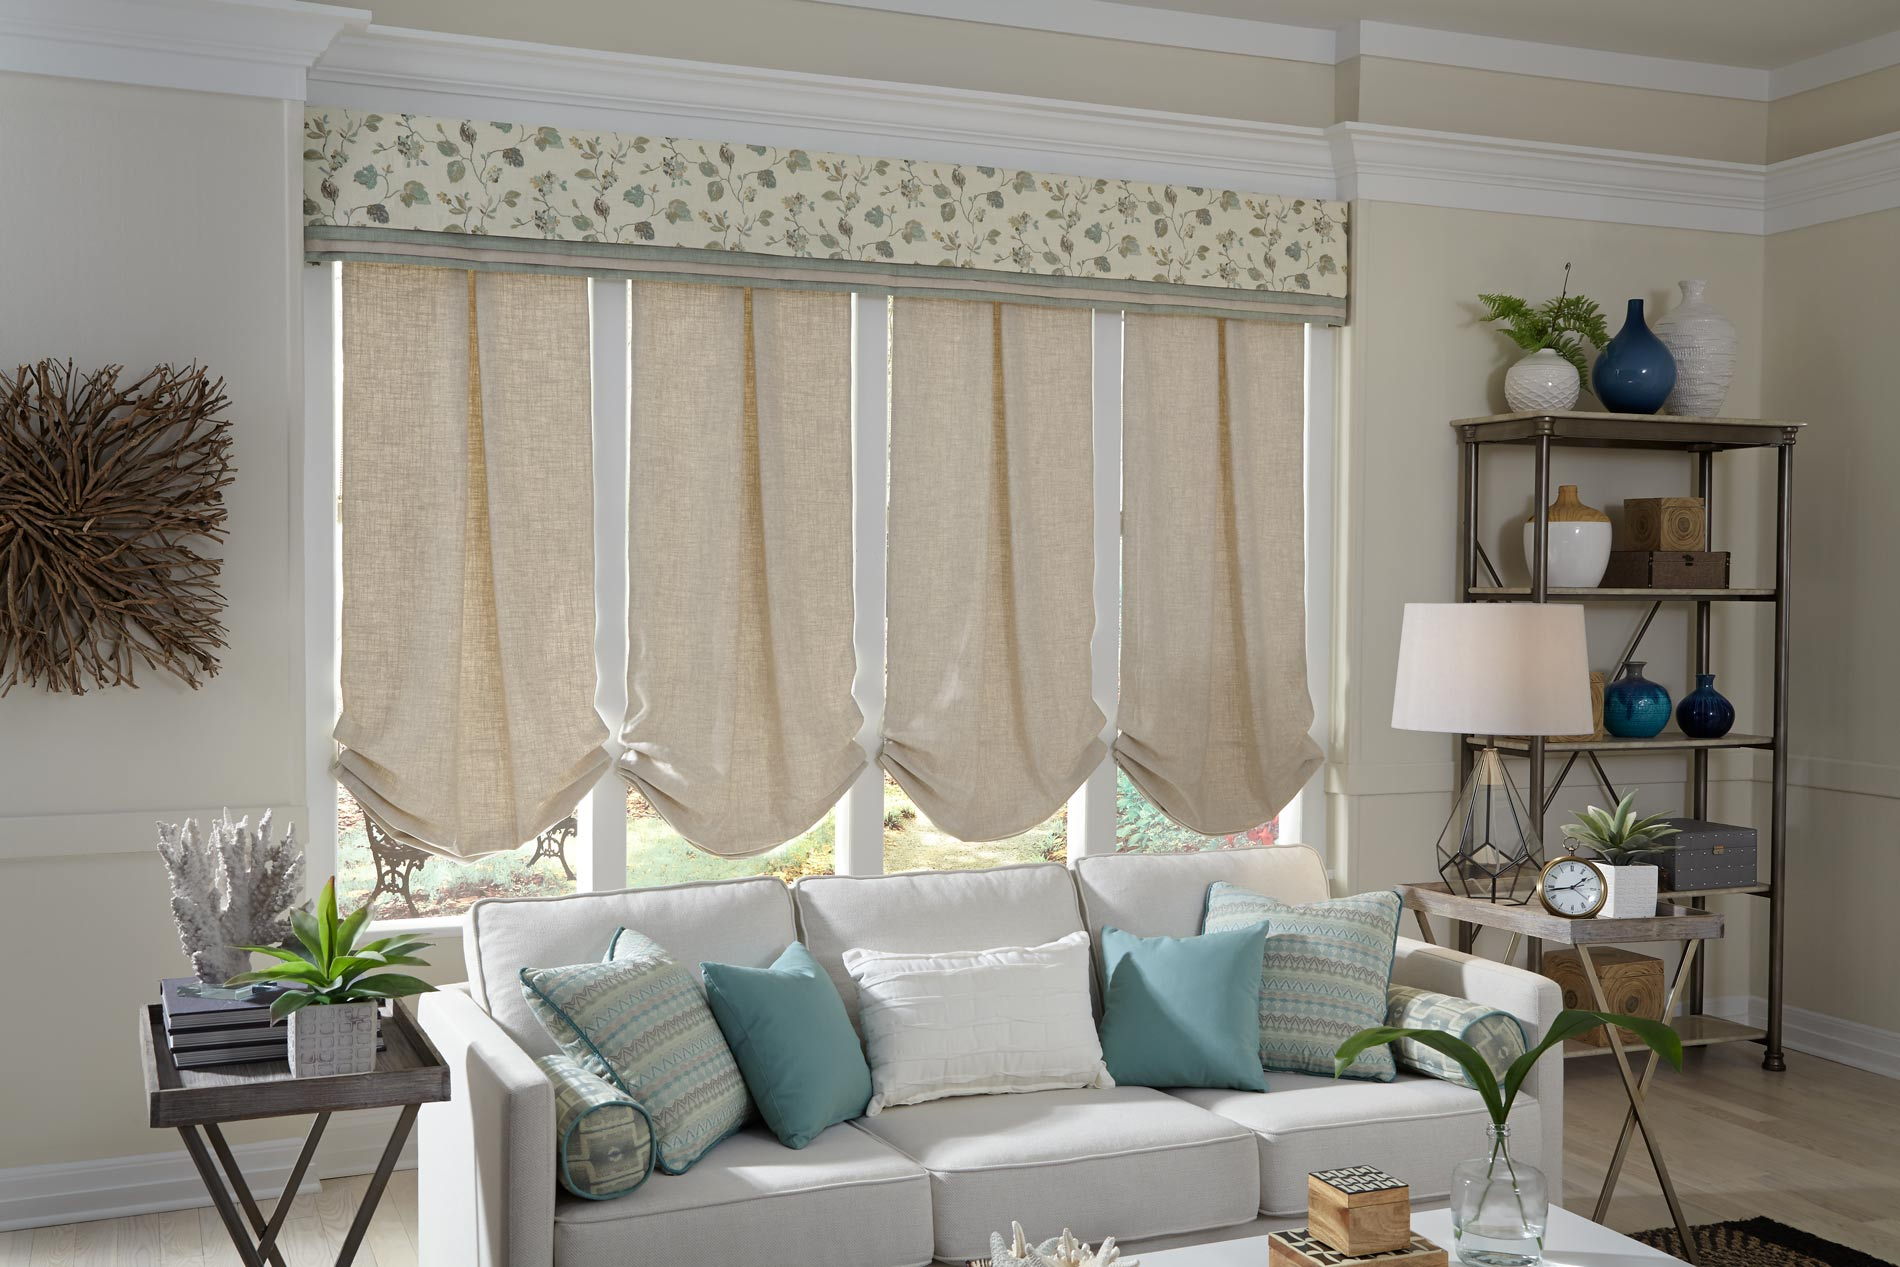 4 light tan Interior Masterpieces® fabric shades with a custom cornice spanning the width of all four and a light gray couch that has custom accent pillows